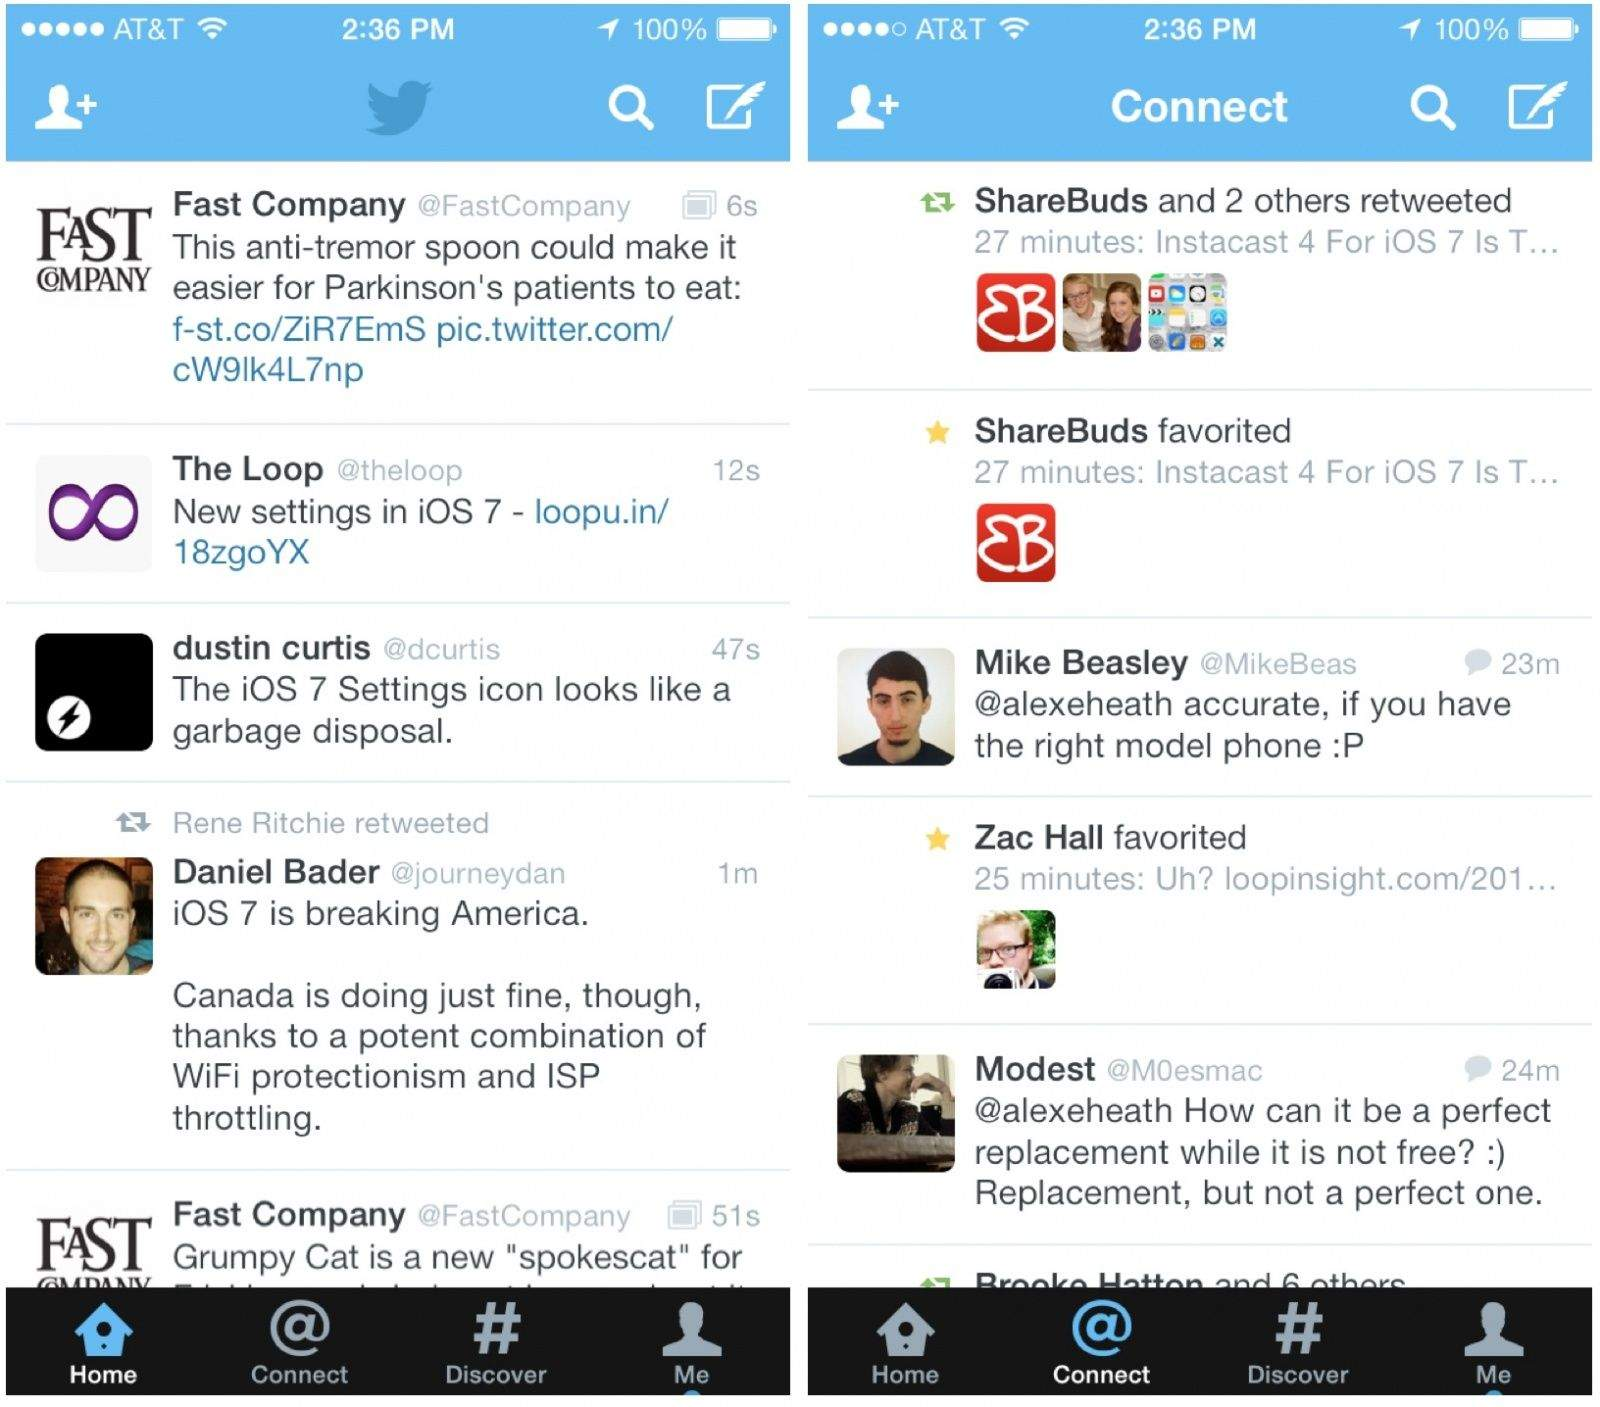 Twitter For IOS 7 Released With New Design, Icon On IPhone